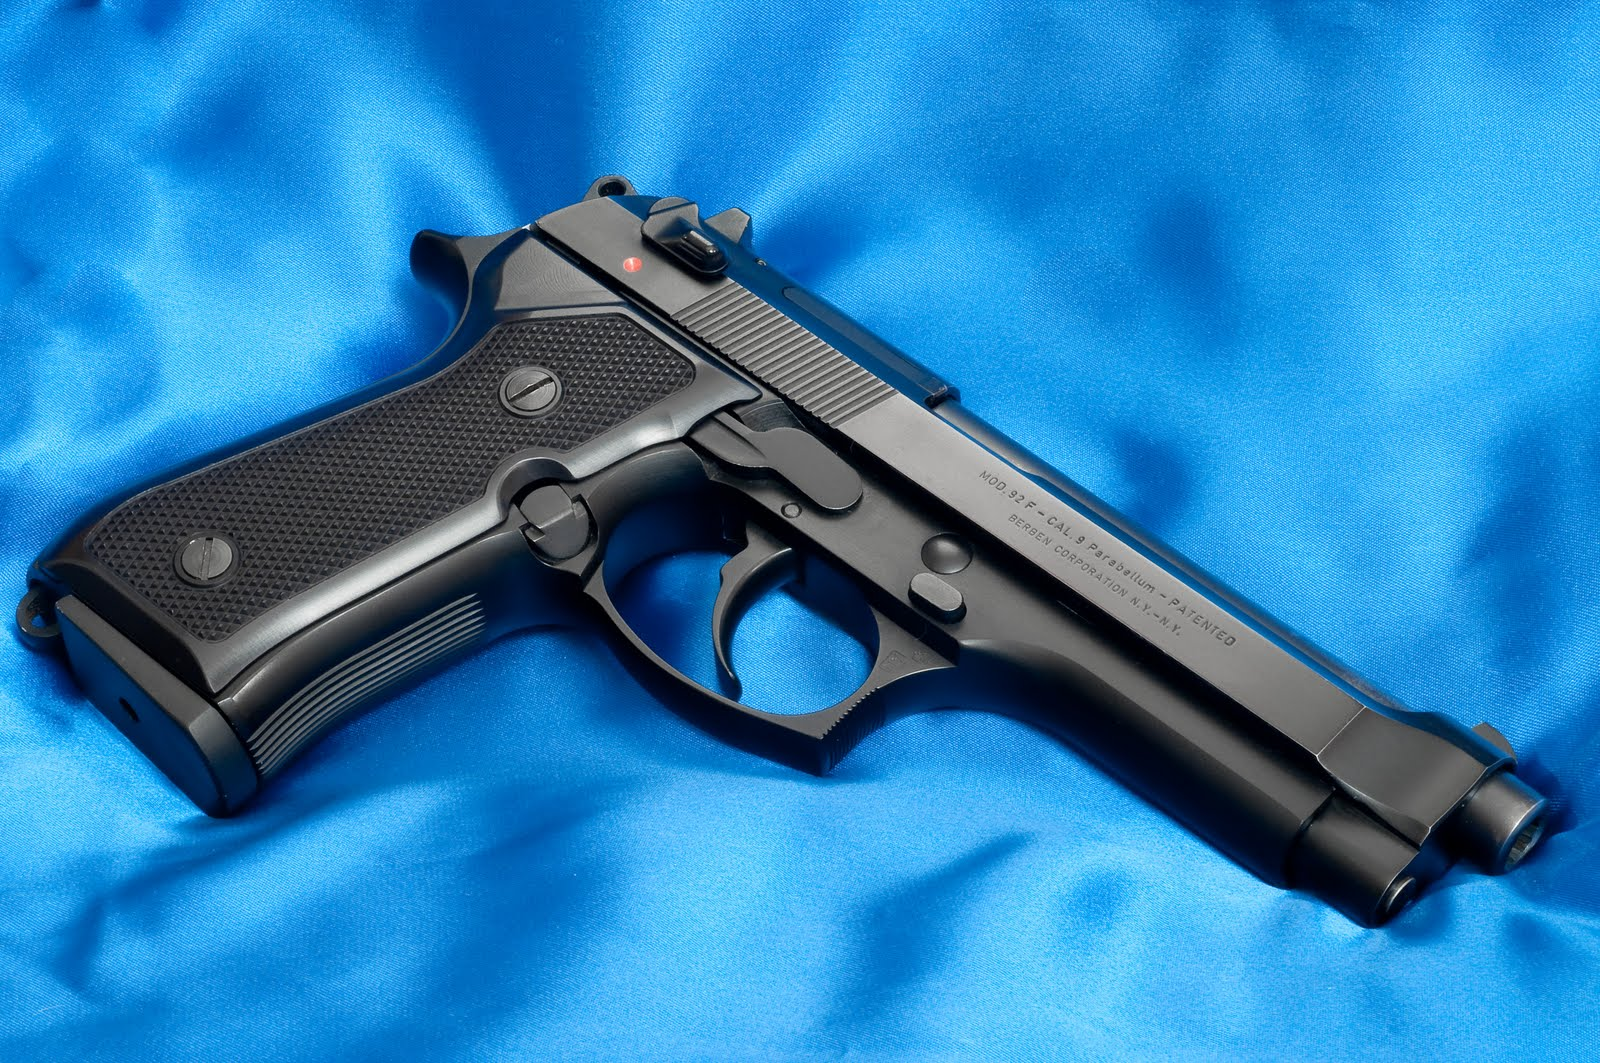 M9 Beretta Photos HD Wallpapers | Desktop Wallpapers